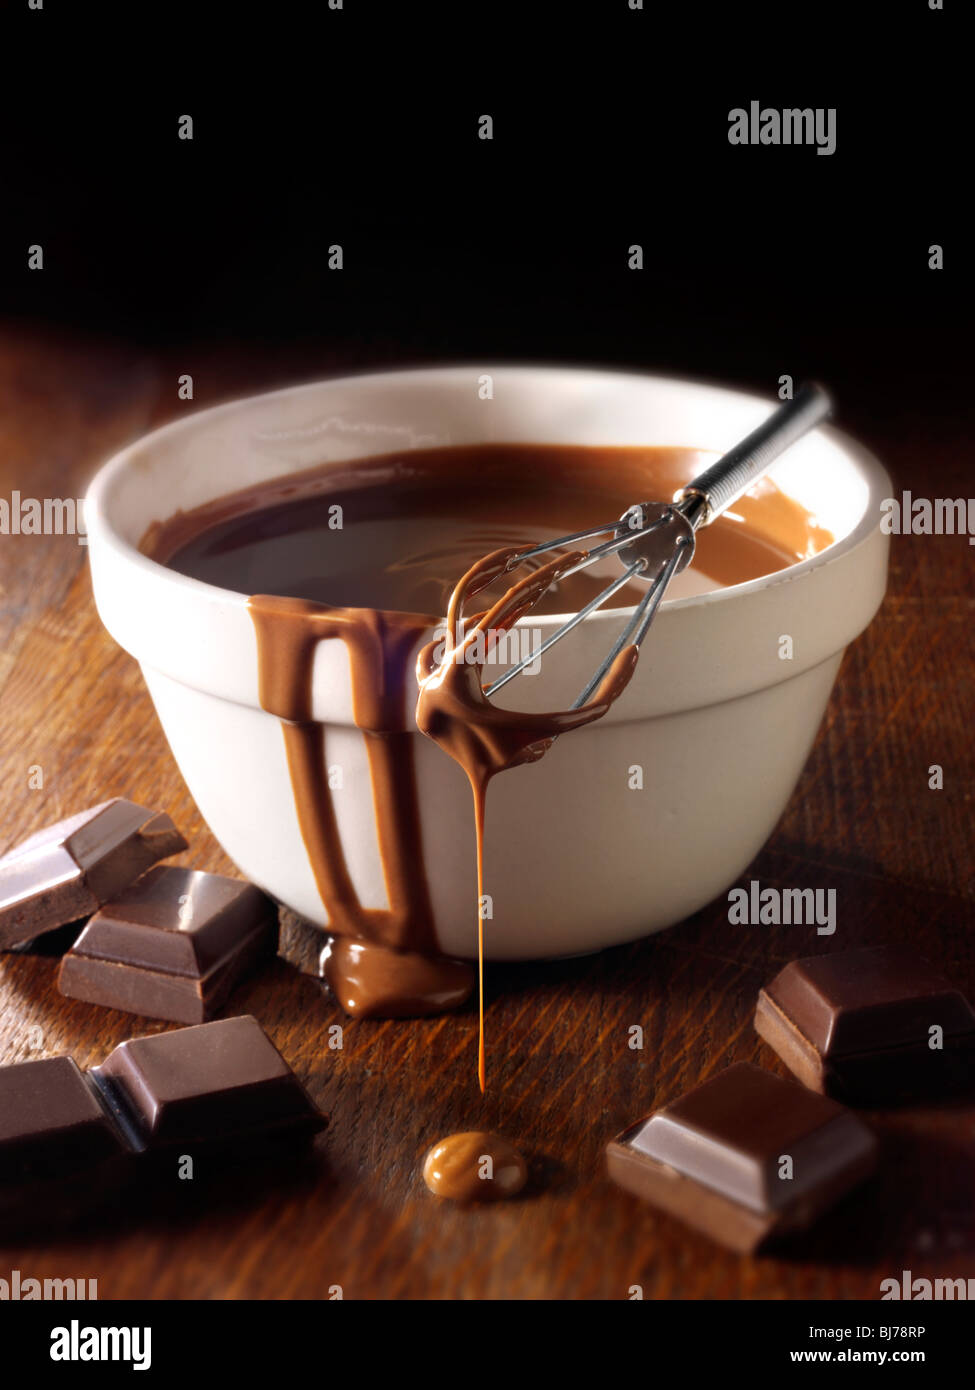 Melted Choclate being stirred in a bowl - Stock Photos. - Stock Image